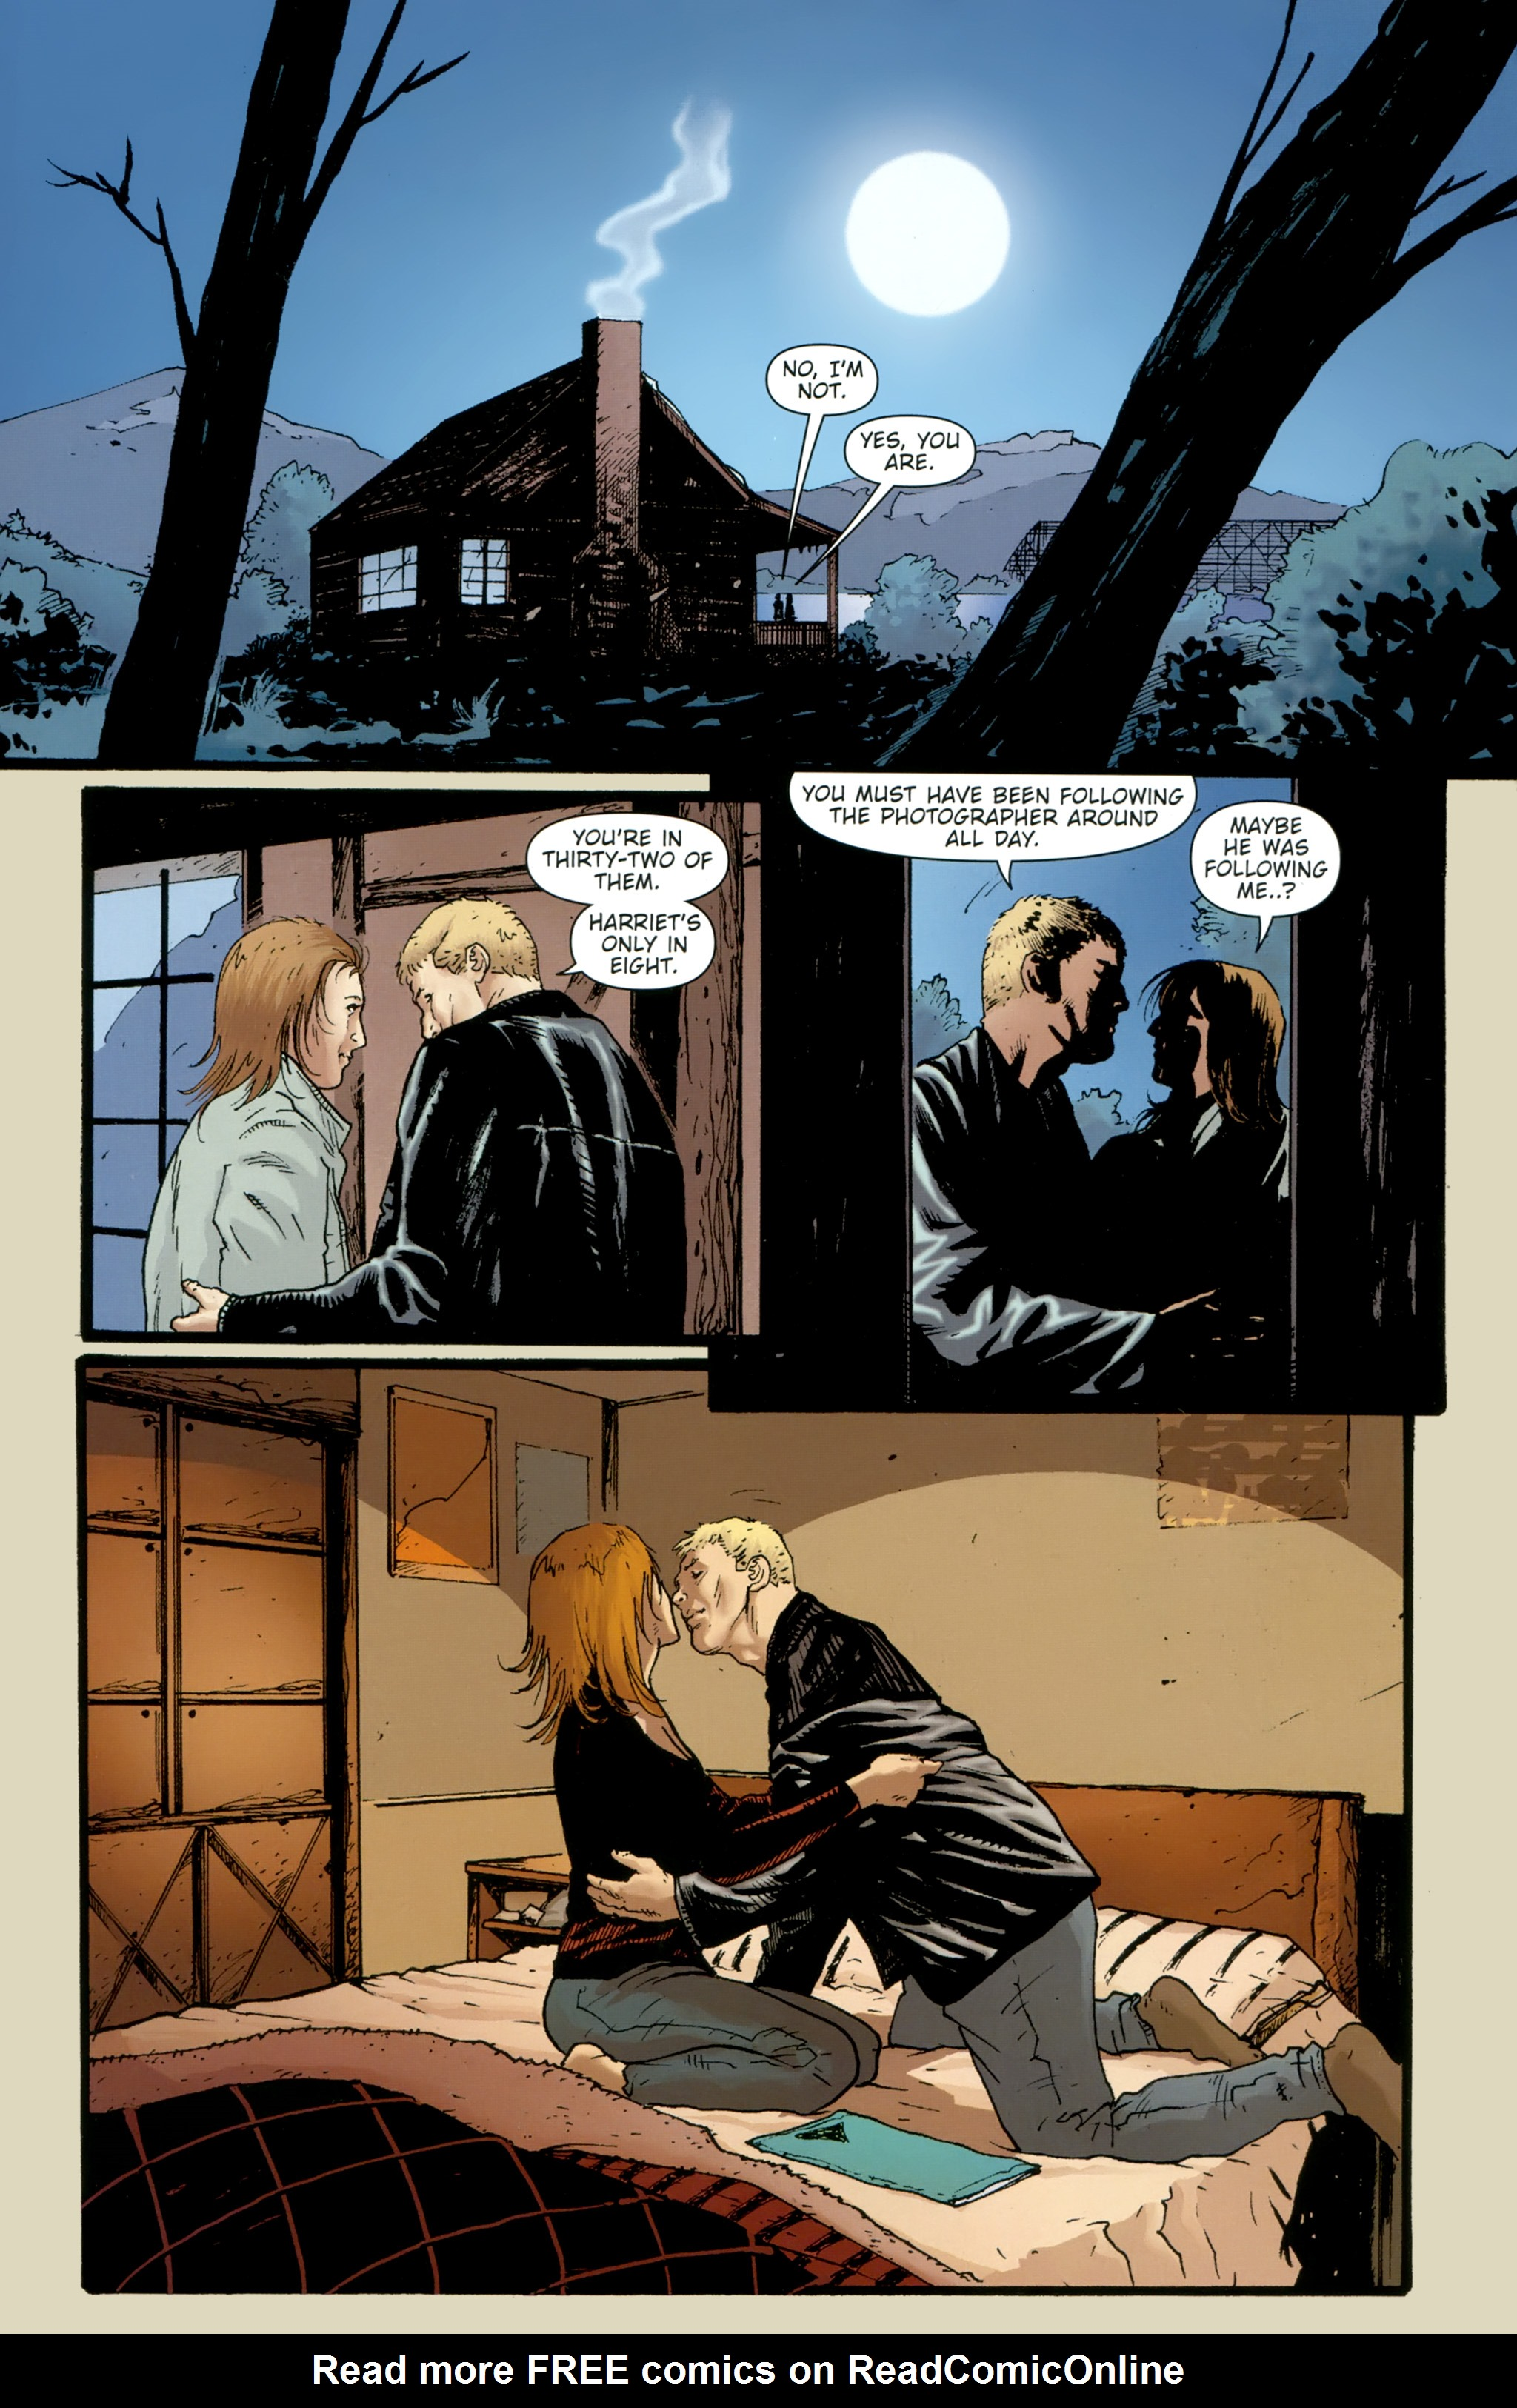 Read online The Girl With the Dragon Tattoo comic -  Issue # TPB 2 - 17